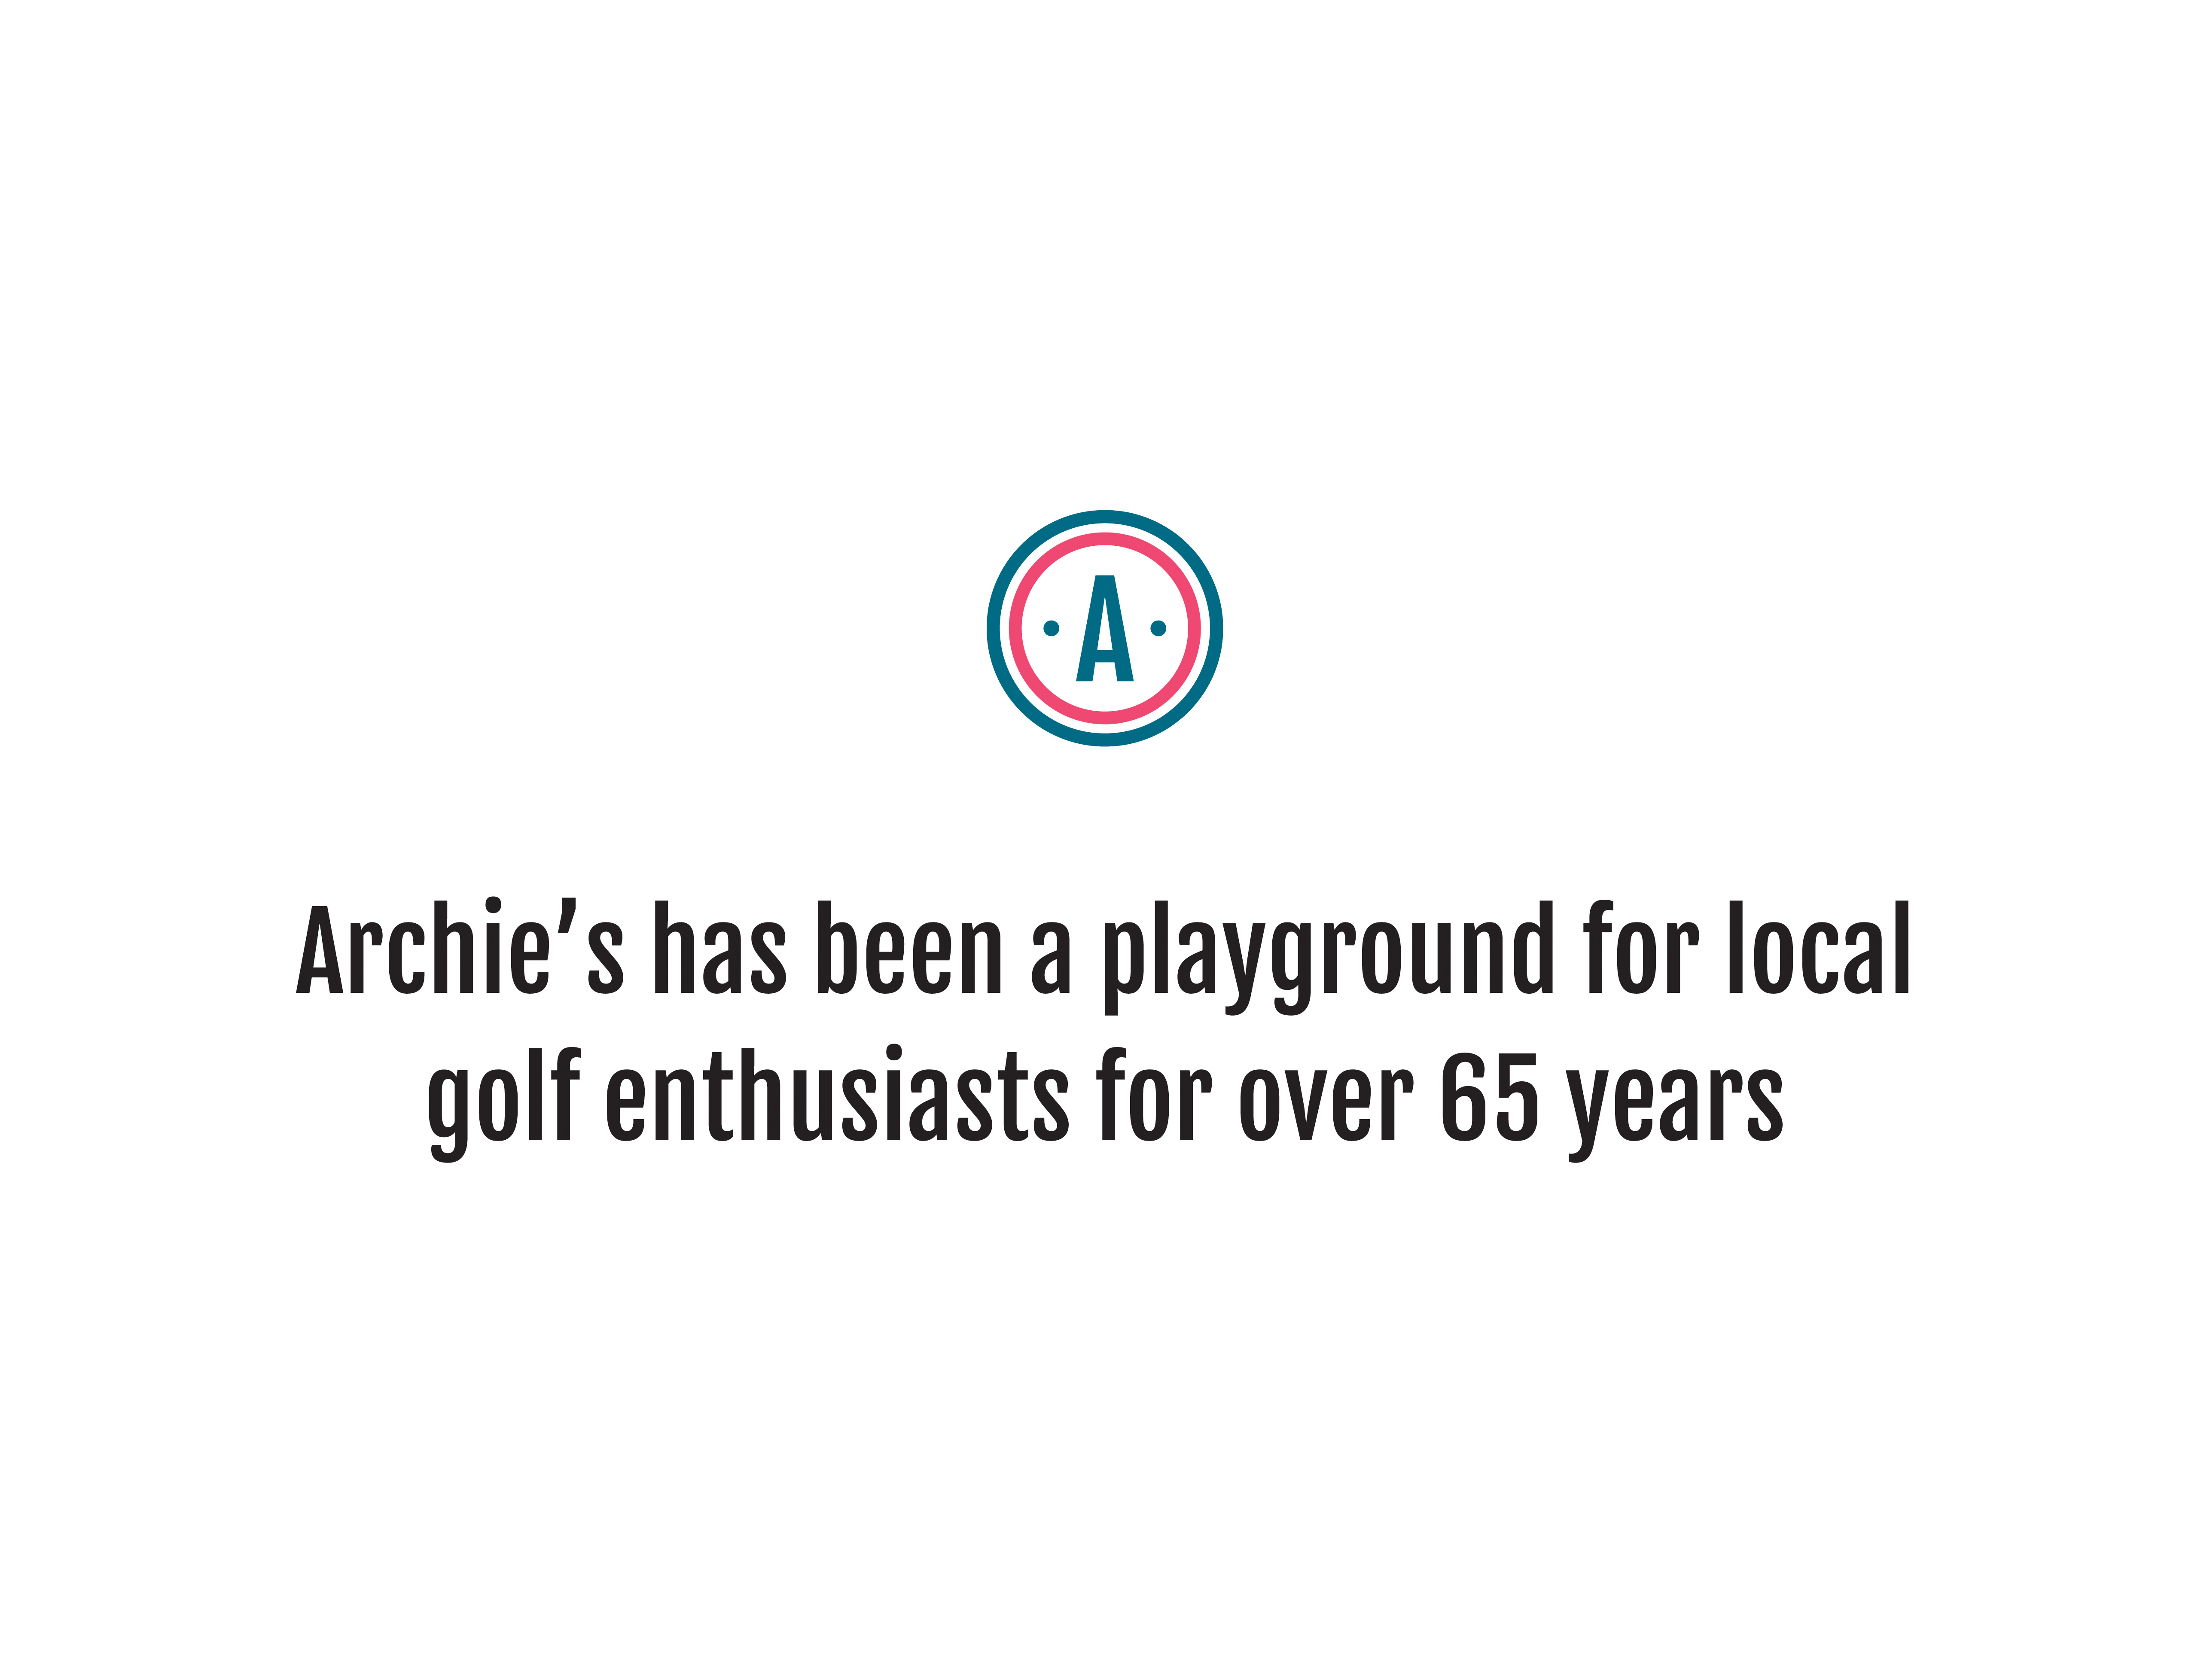 Archie's has been a playground for local golf enthusiasts for over 65 years